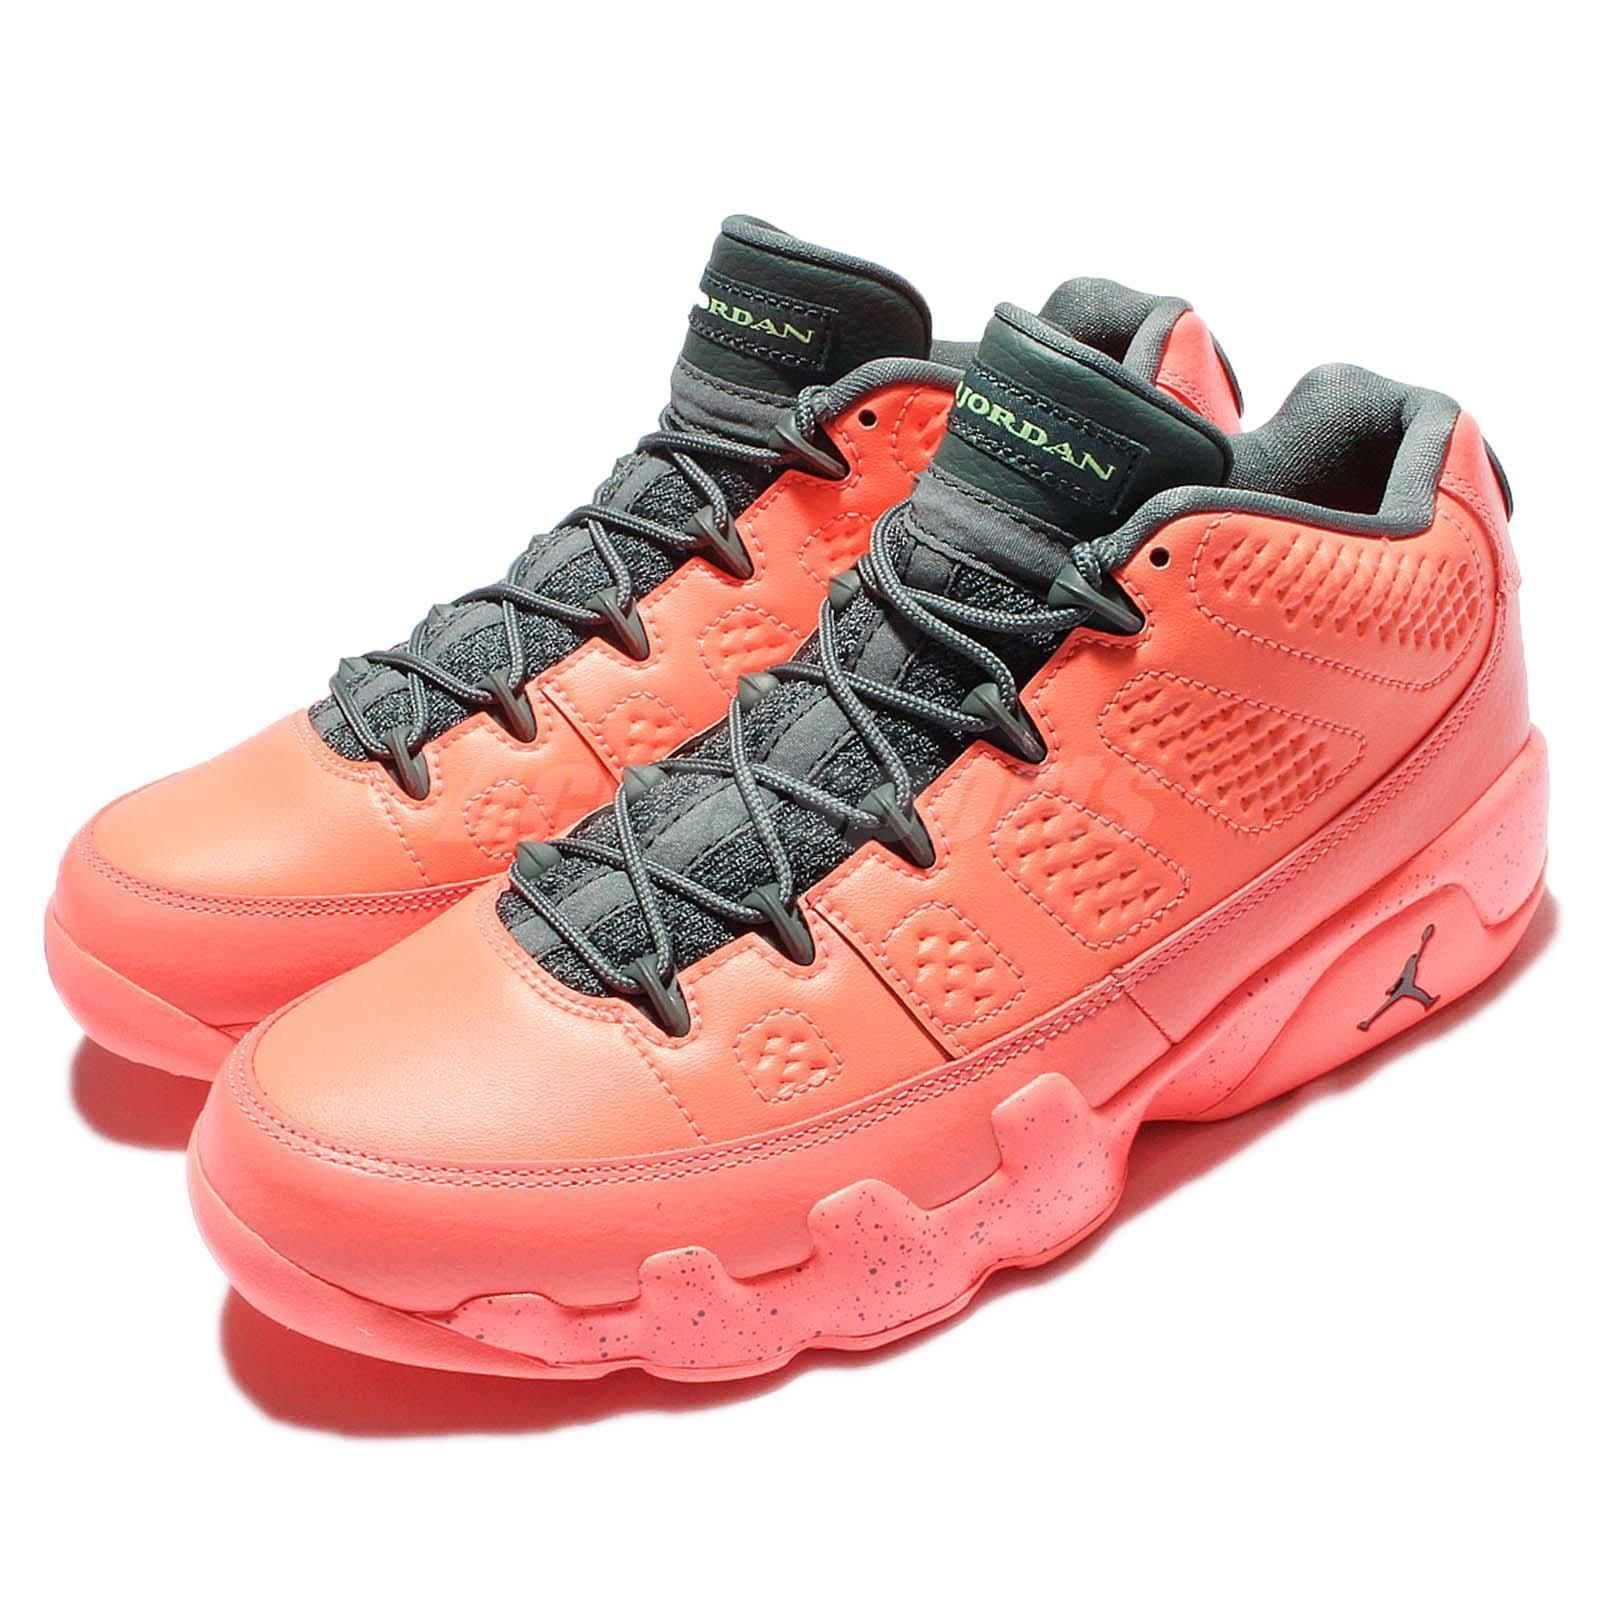 bf3f5d23ac68e7 Nike Air Jordan 9 Retro Low IX Bright Mango Mens 832822-805 AJ9 All Size 8  12